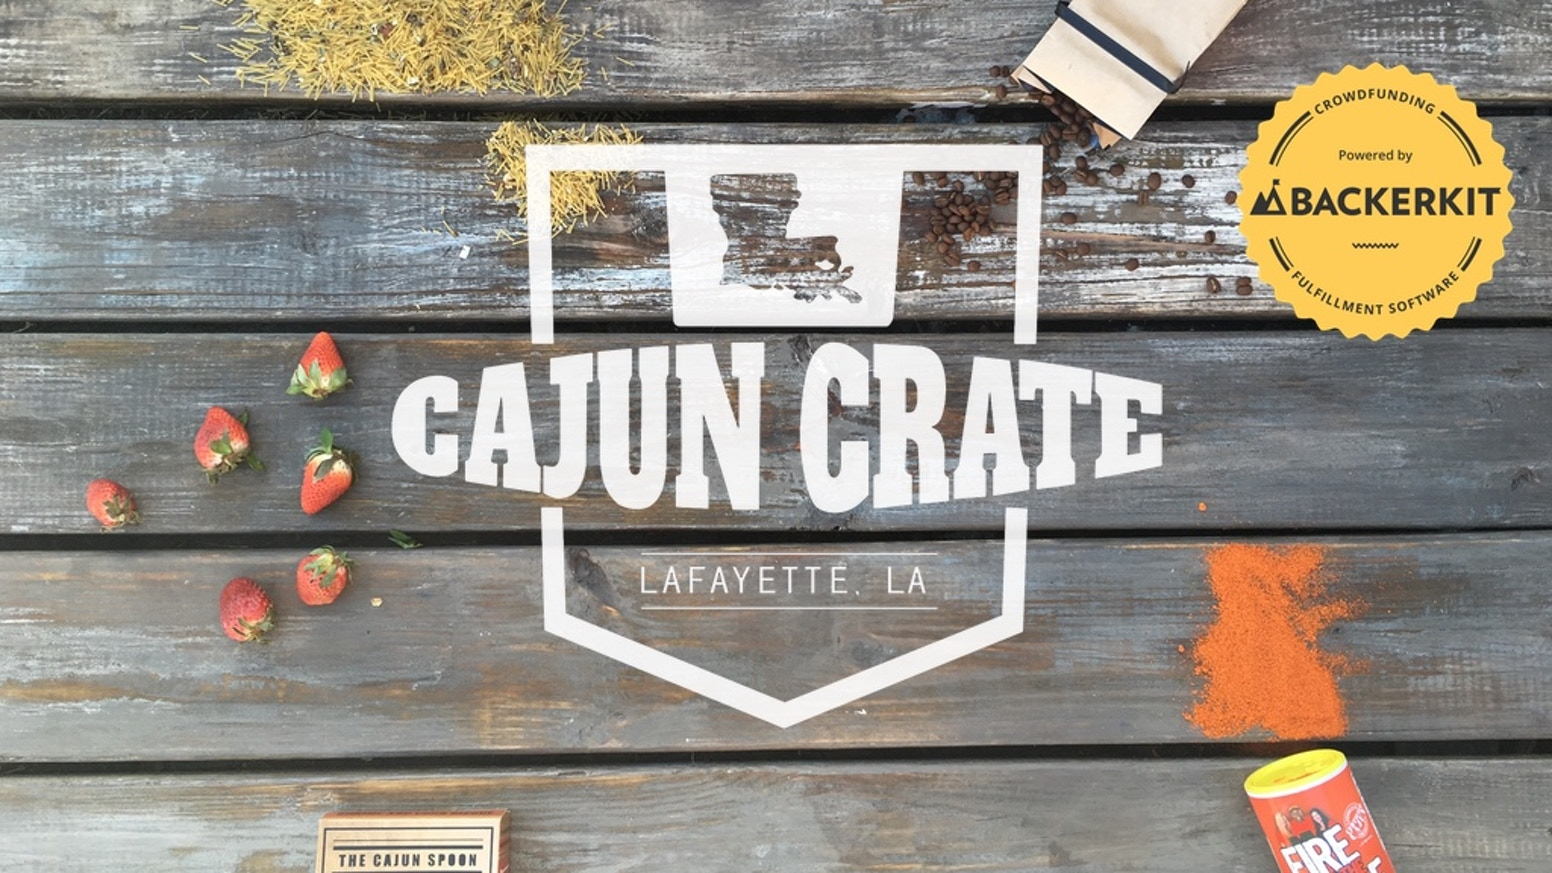 cajun crate is a monthly subscription box delivering carefully curated items from louisiana discover brands - Cajun 12 Days Of Christmas